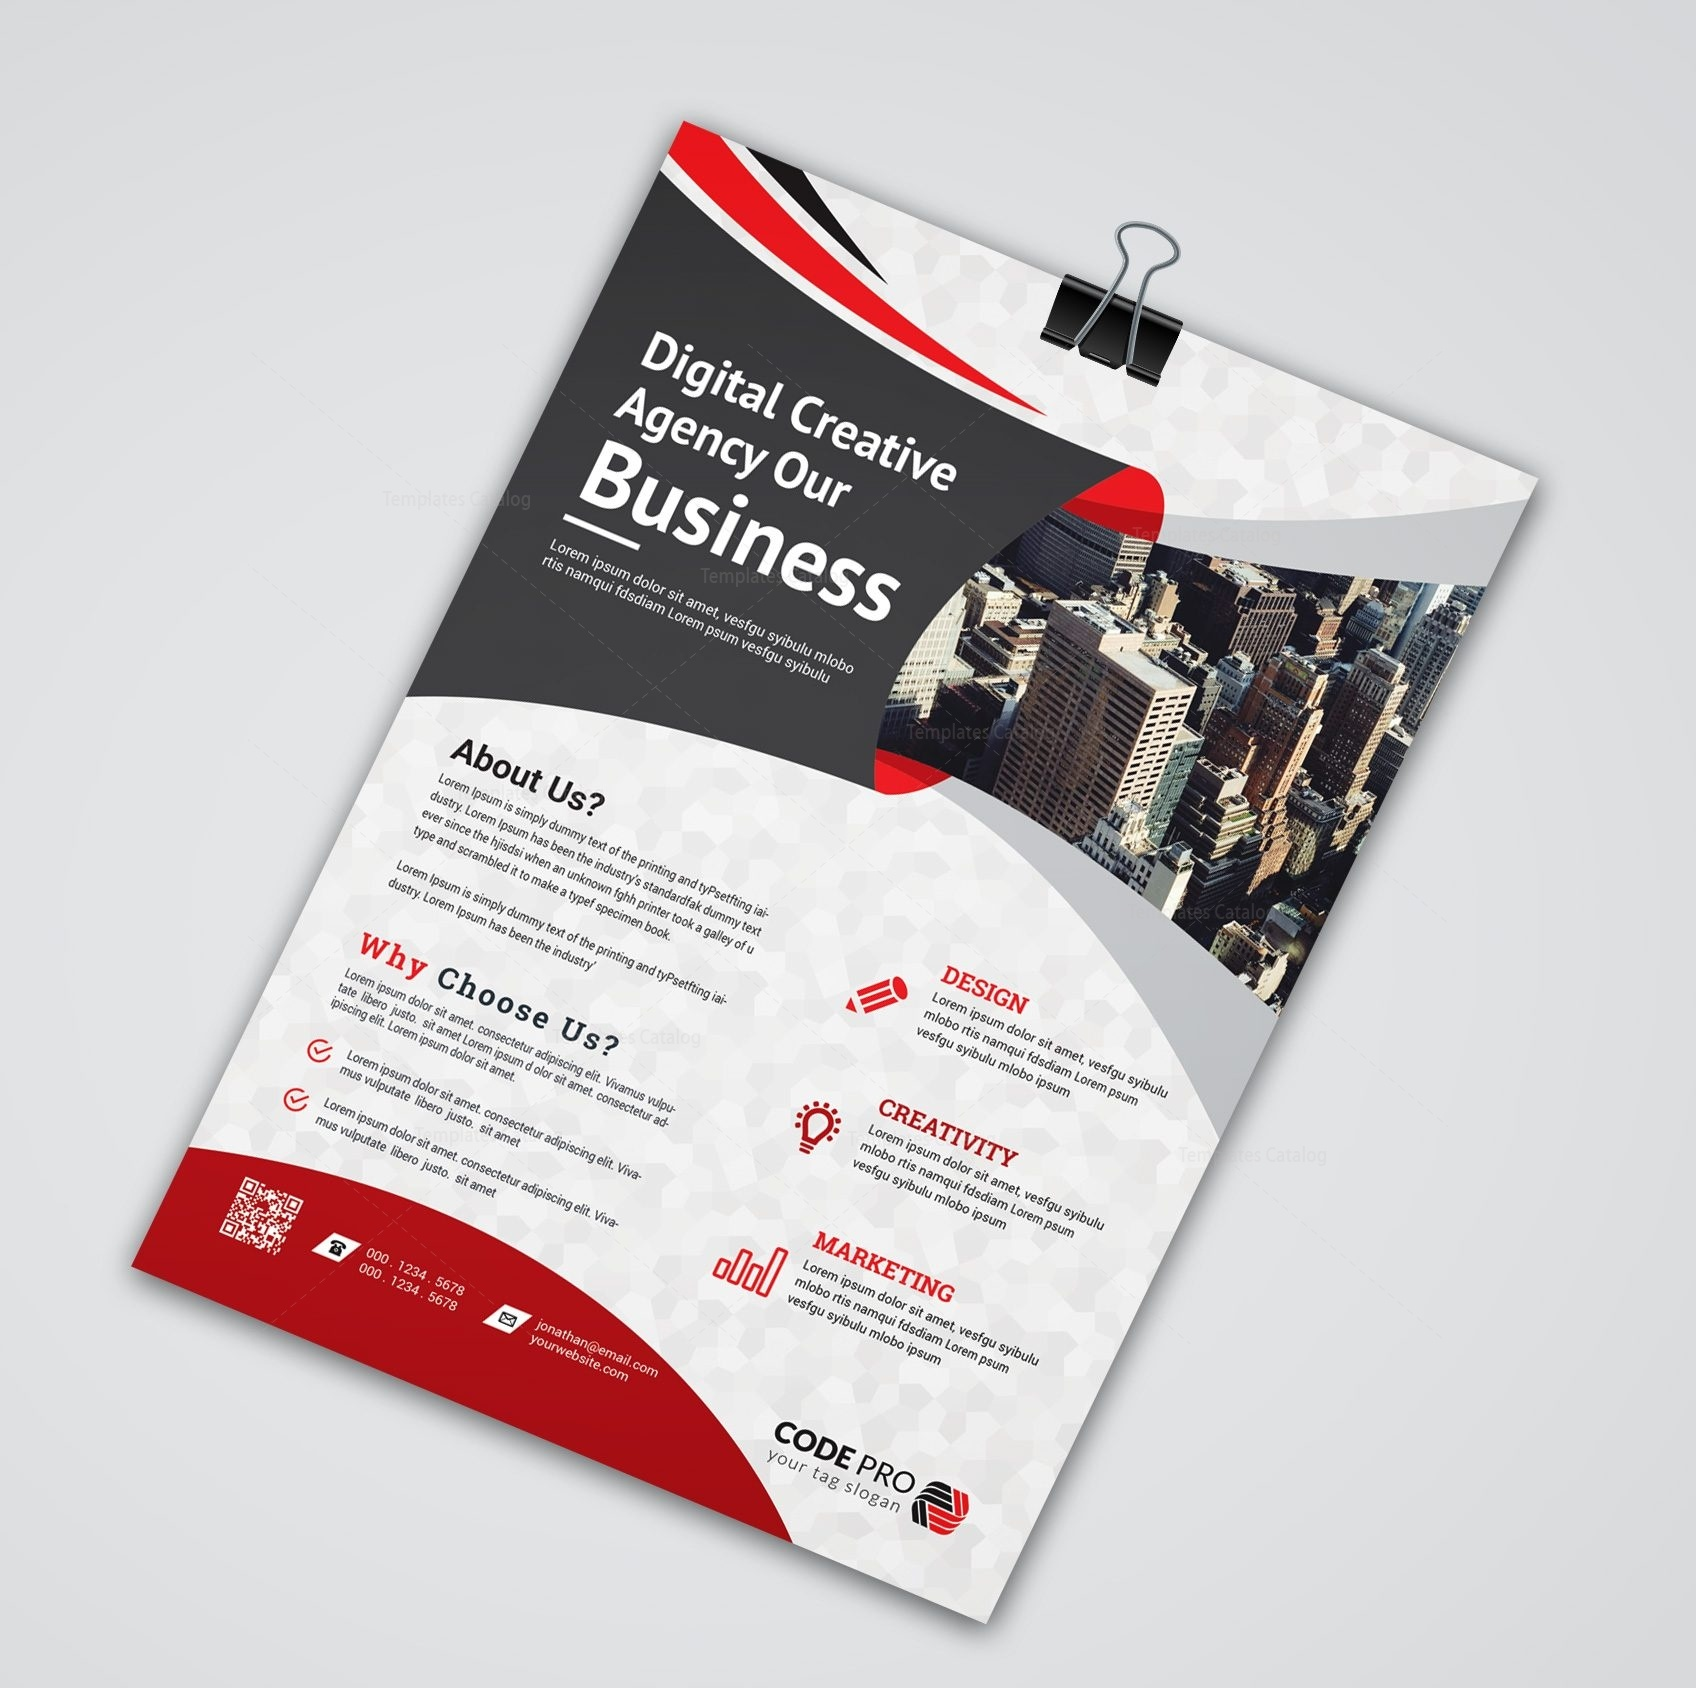 how much does it cost to print flyers quora